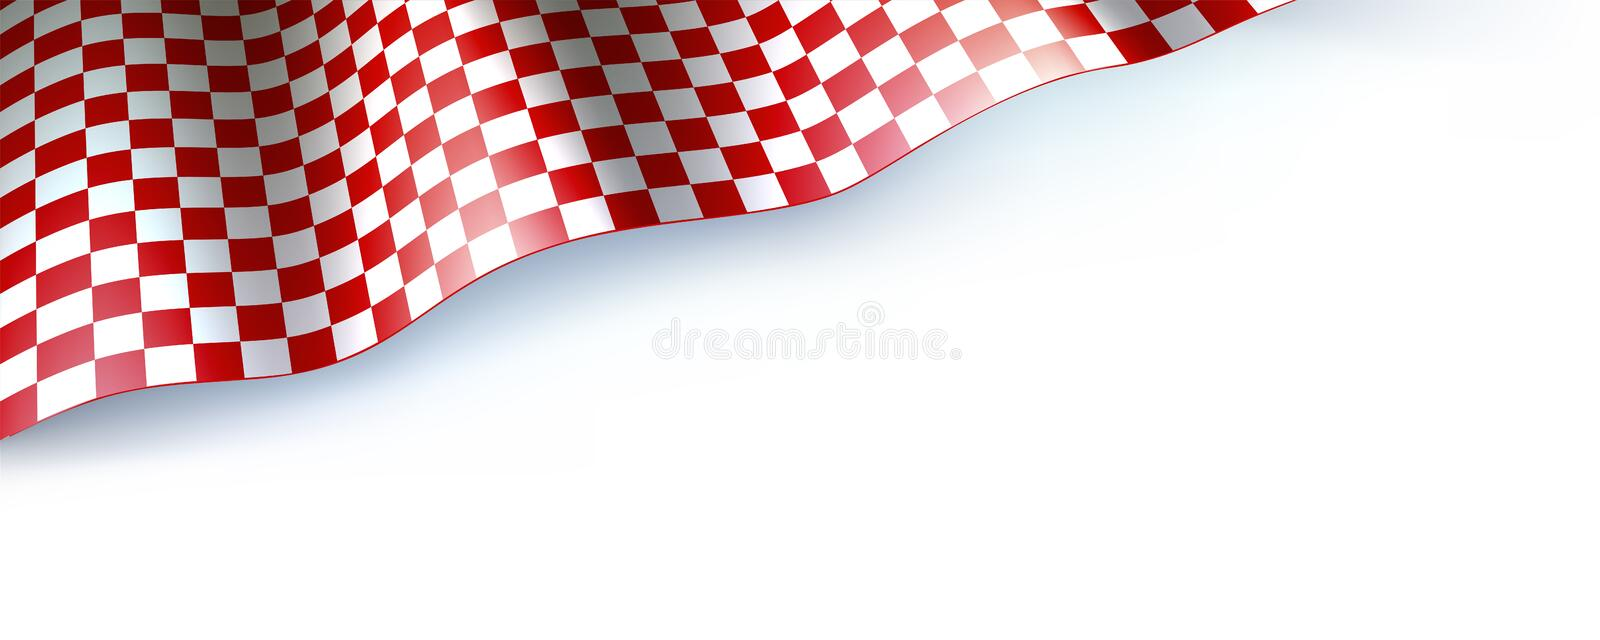 Flag for car race or motorsport rally on white. Checkered flag, red and white. Three dimensional vector illustration for royalty free illustration